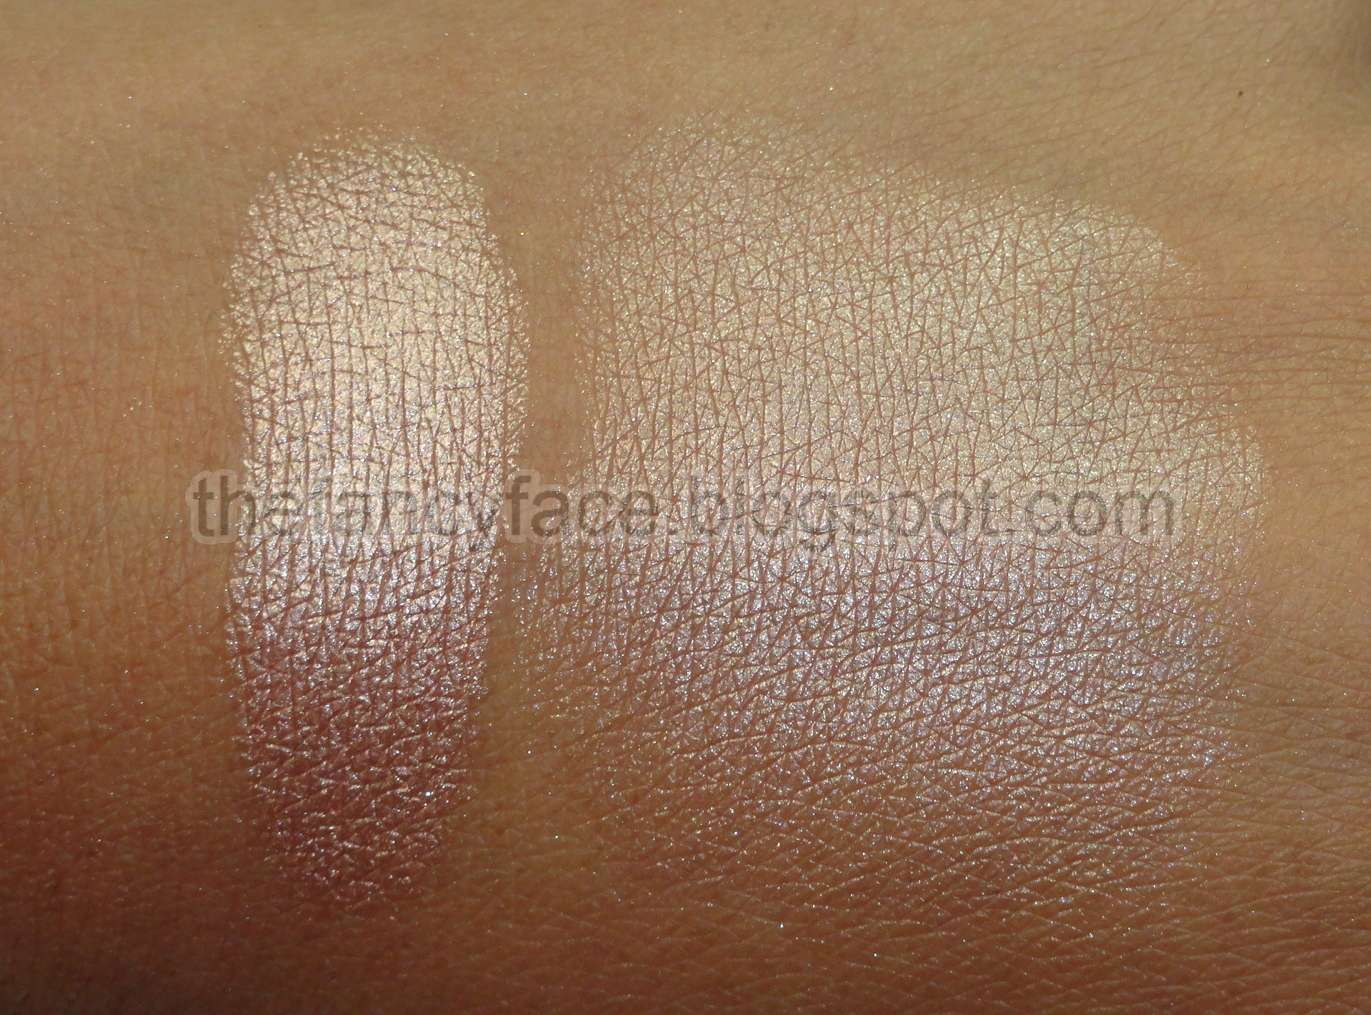 The Fancy Face Mac Extra Dimension Skinfinishes Superb